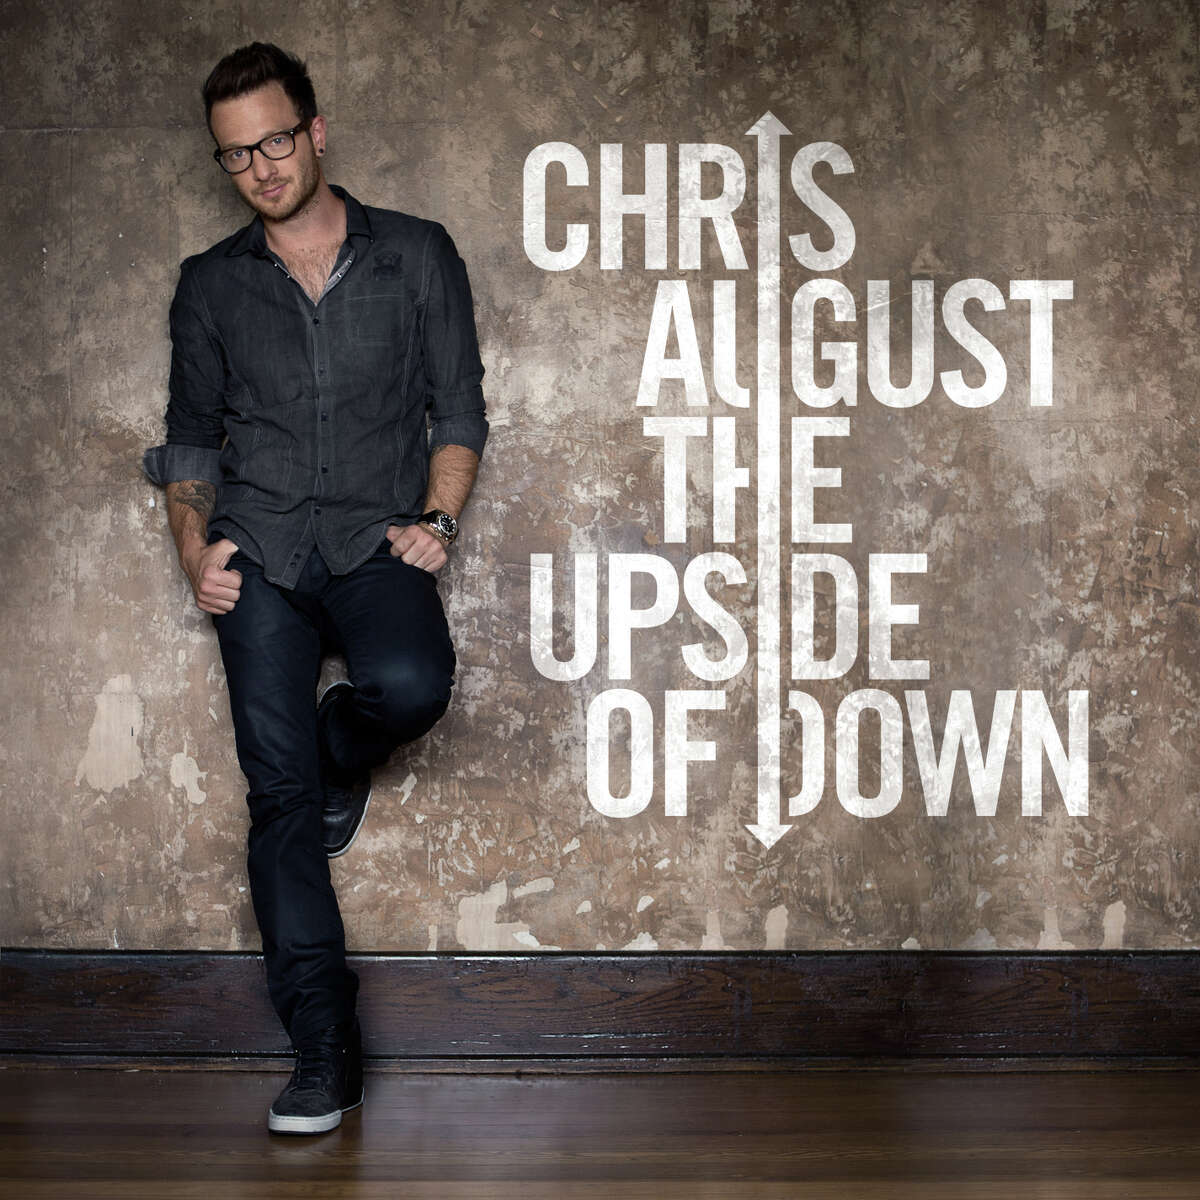 """Chris August found special meaning in single """"Center of It,"""" from his new CD, """"The Upside of Down,"""" after a serious skateboarding accident."""